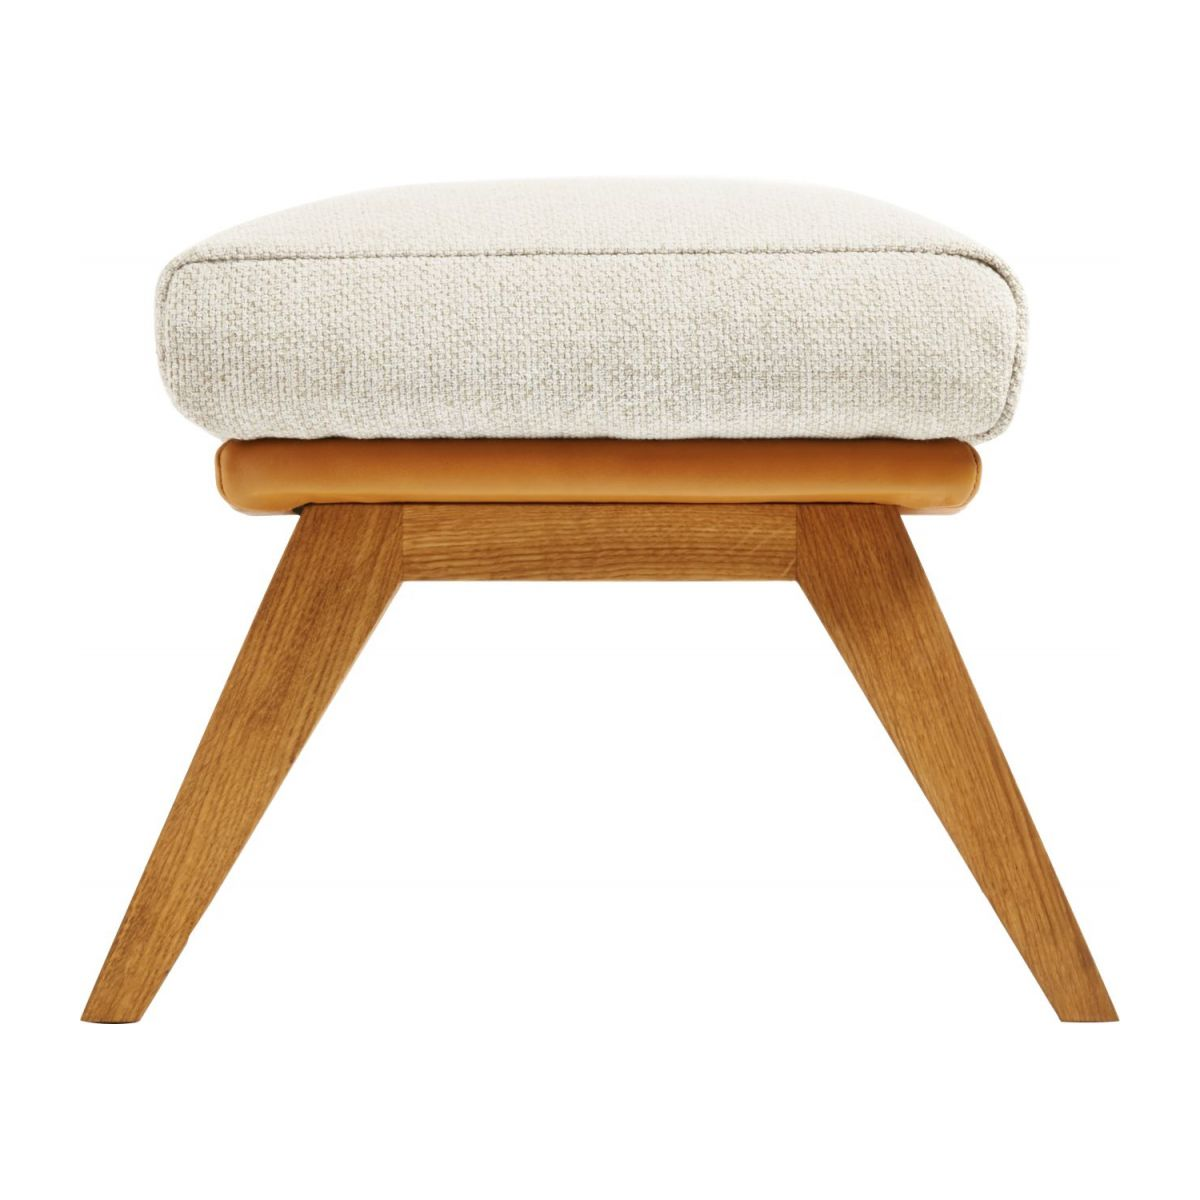 Footstool in Ancio fabric, nature et cuir marron with oak legs n°2